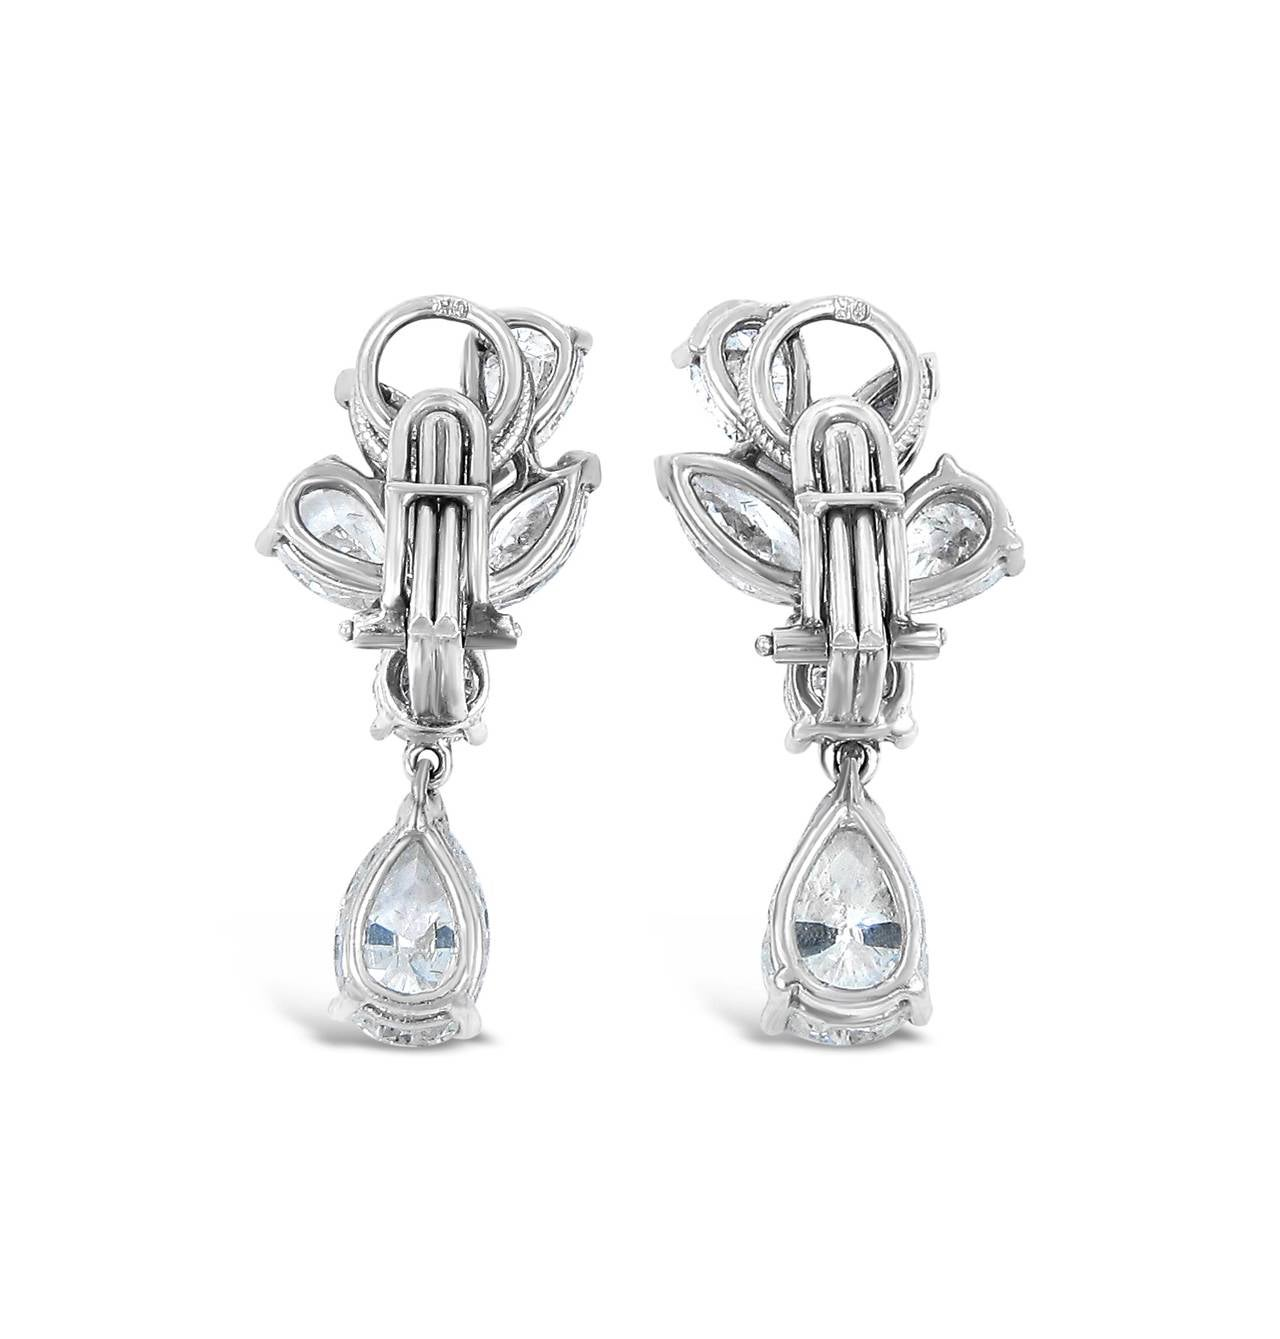 These impressive earrings have a total weight of approximately 5.16cts. Fine craftsmanship was used in putting together these earring. The lower pear shape diamonds rock back and forth for added sparkle. There are 2 marquise = .80ctw, 2 round =